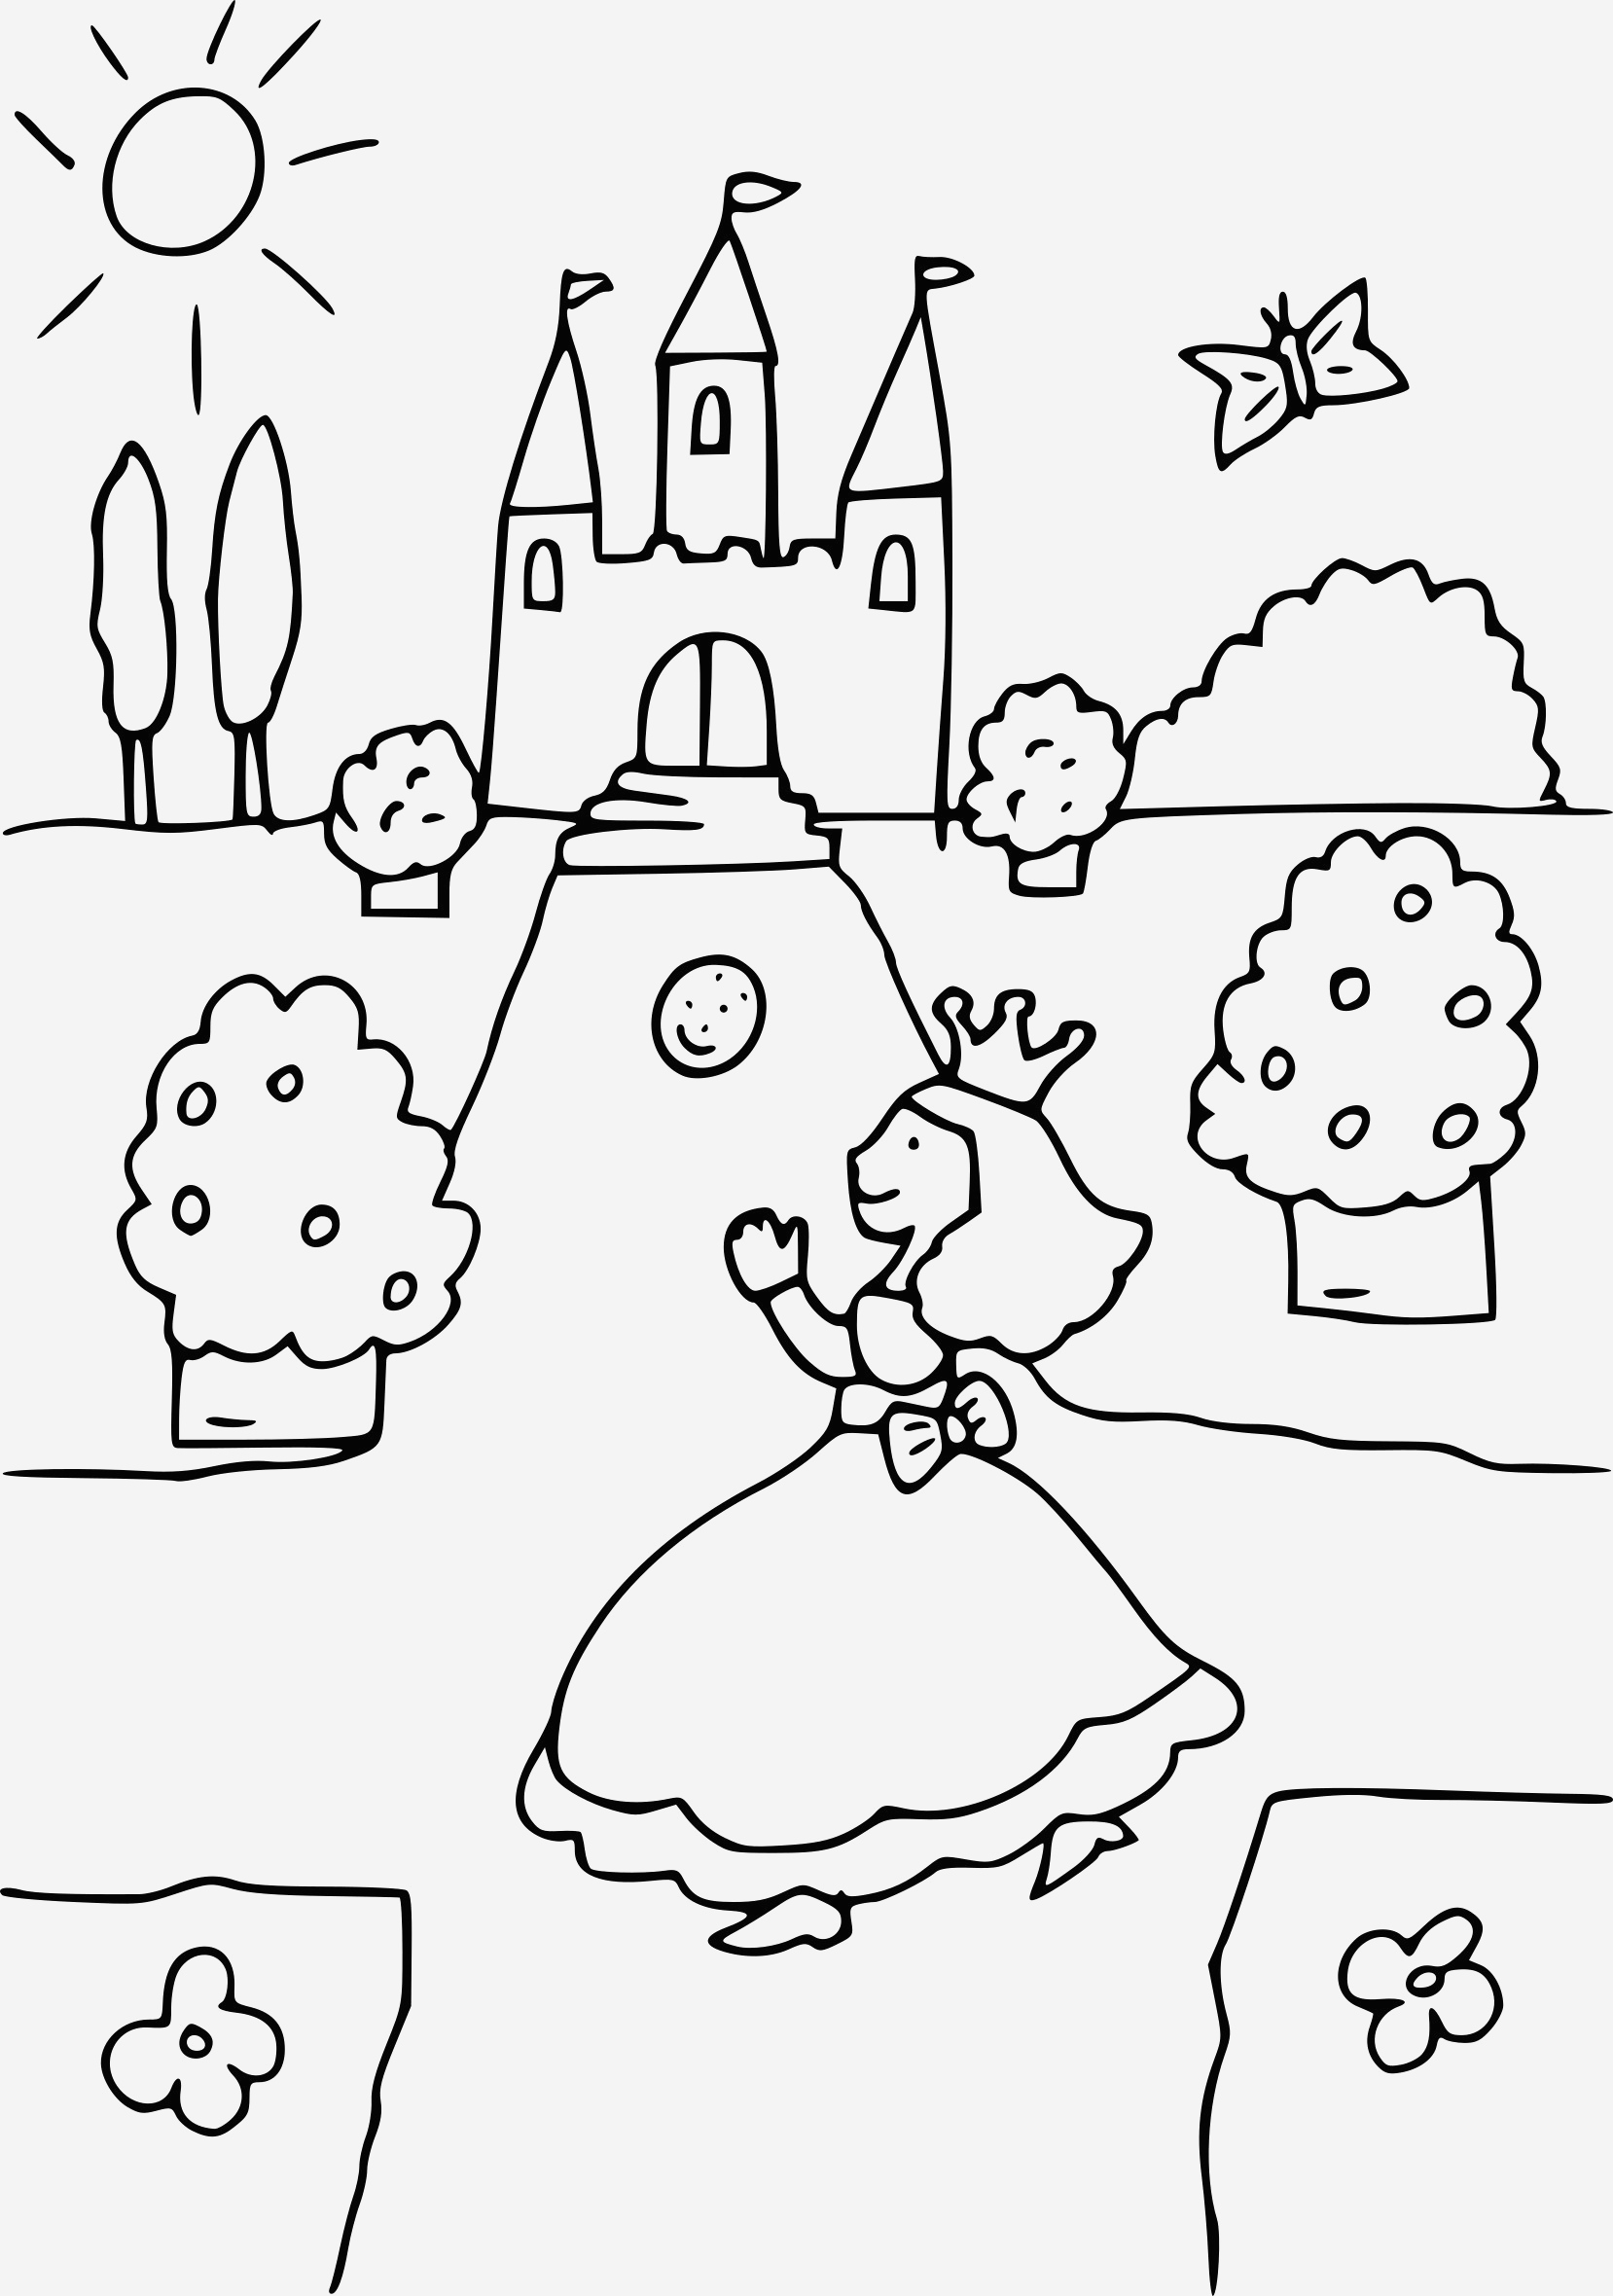 Coloriage Chateau Princesse Awesome Coloriage Princesse Chateau   Imprimer Sur Coloriages Fo Of Coloriage Chateau Princesse